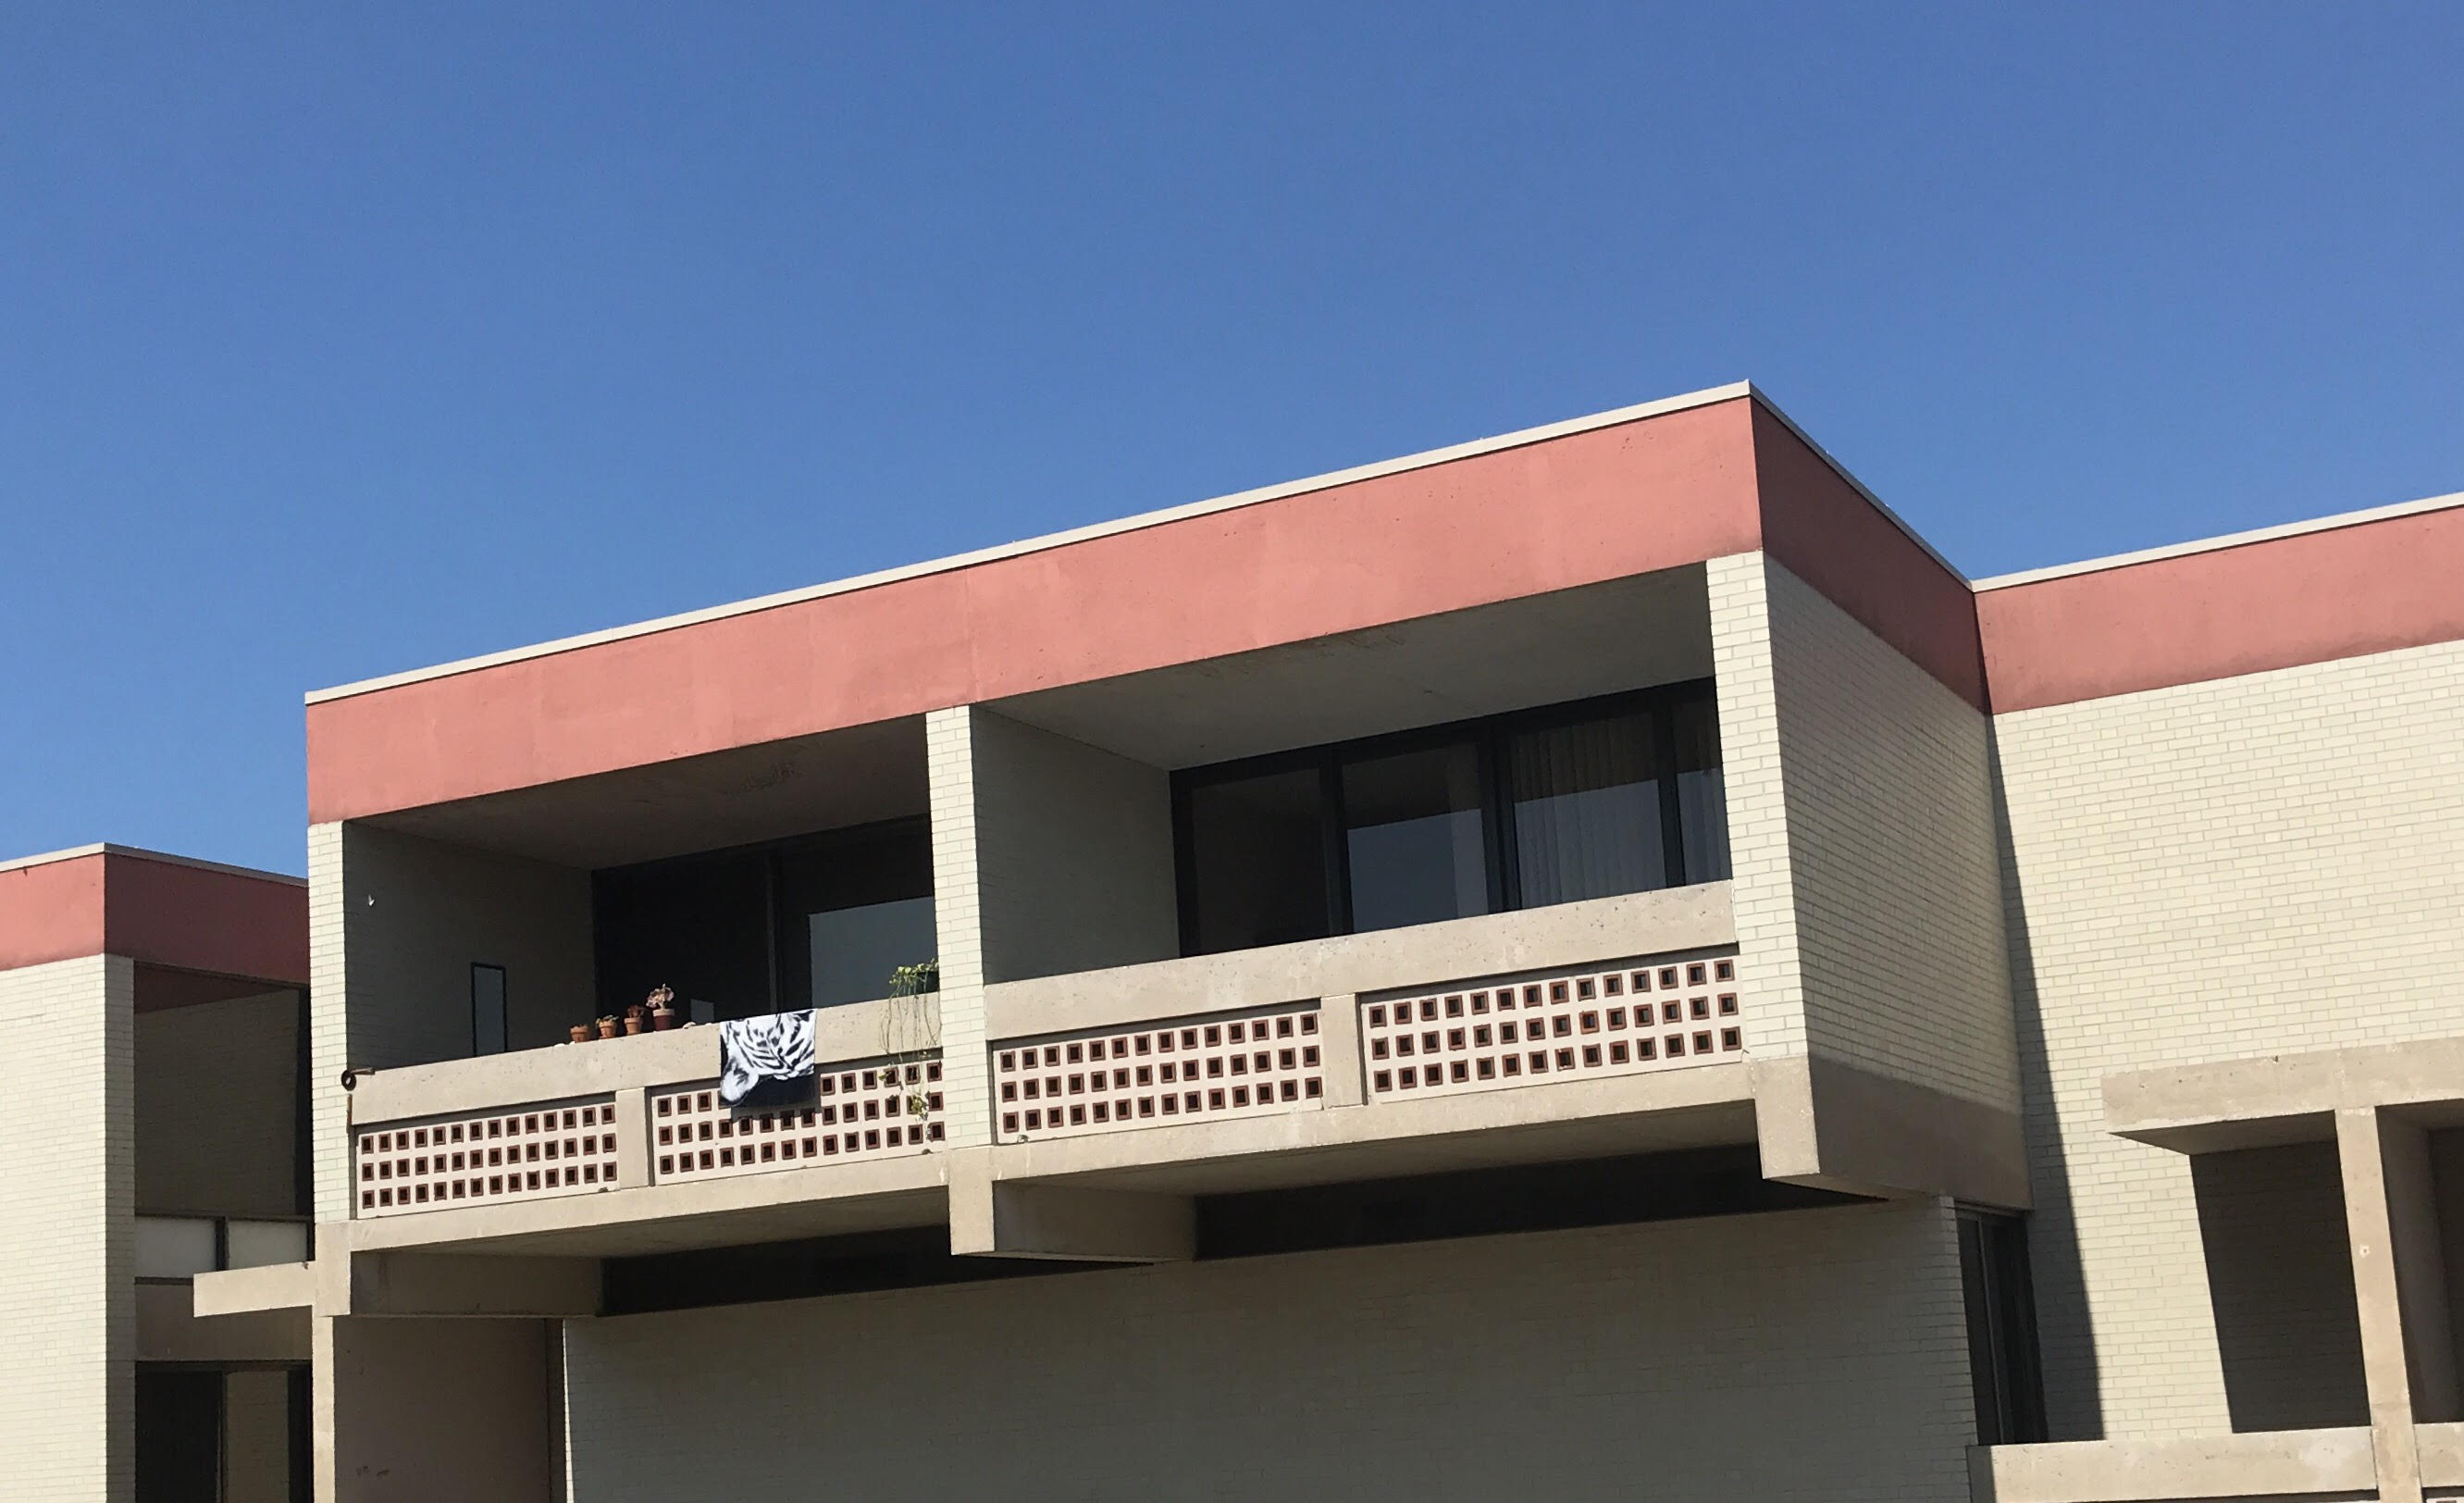 Raising floors and installing doors: a look into what makes dorms habitable